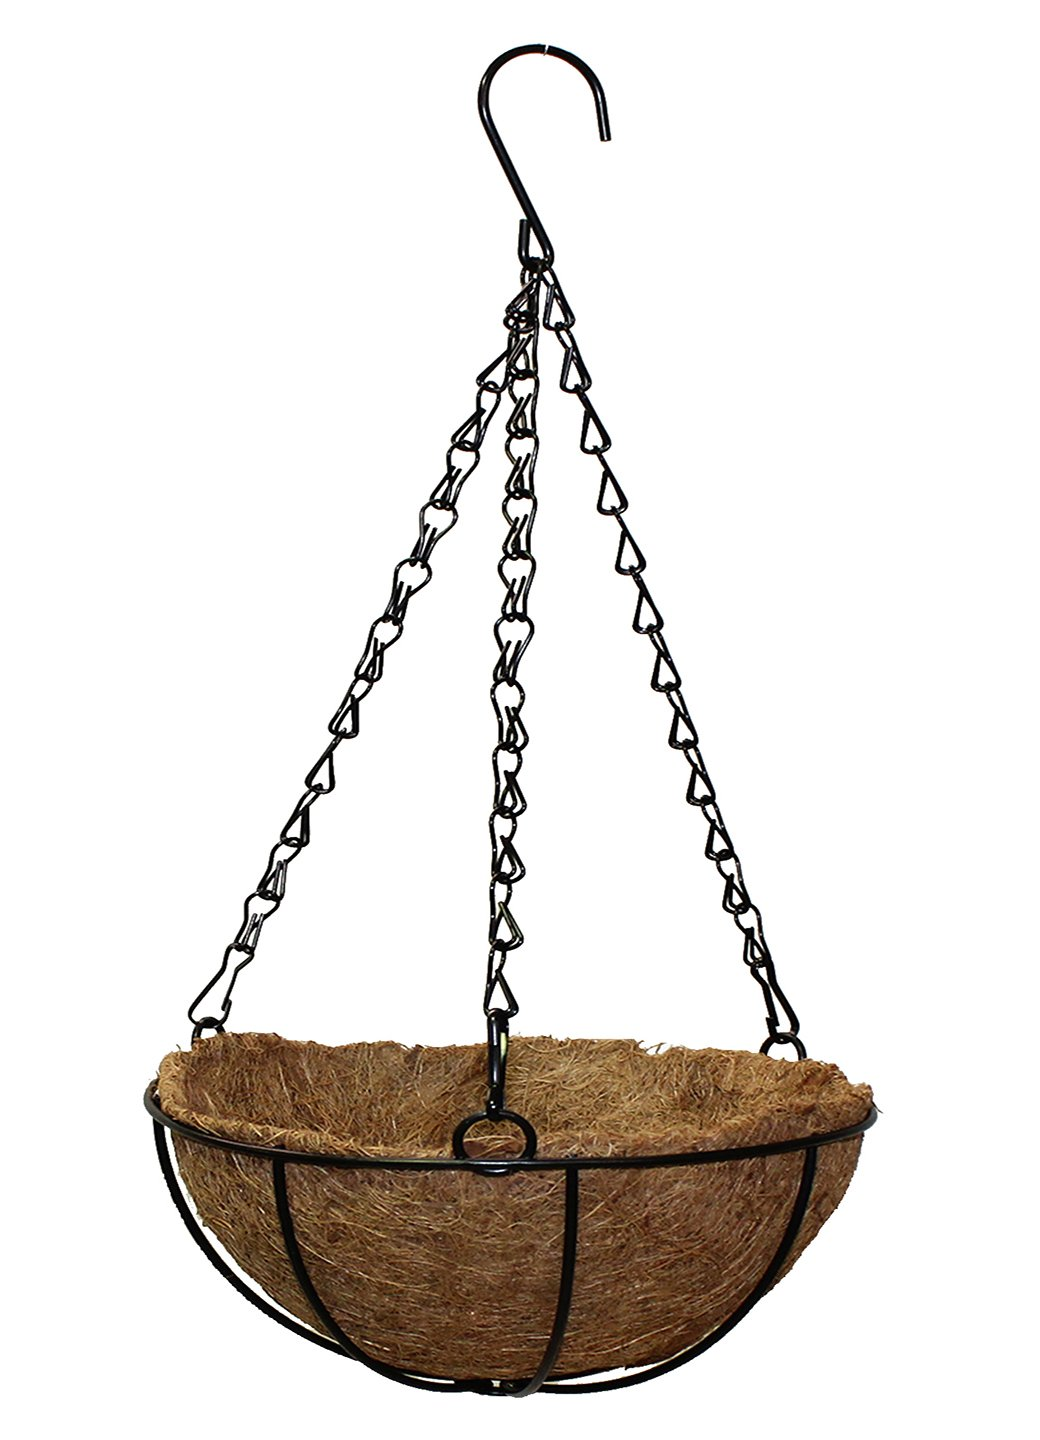 Polliantion Cane Planter with Hanging Metal Chain For Home Balcony Garden (Small, Pack of 1) - Artificial Flowers & Plants - PolliNation